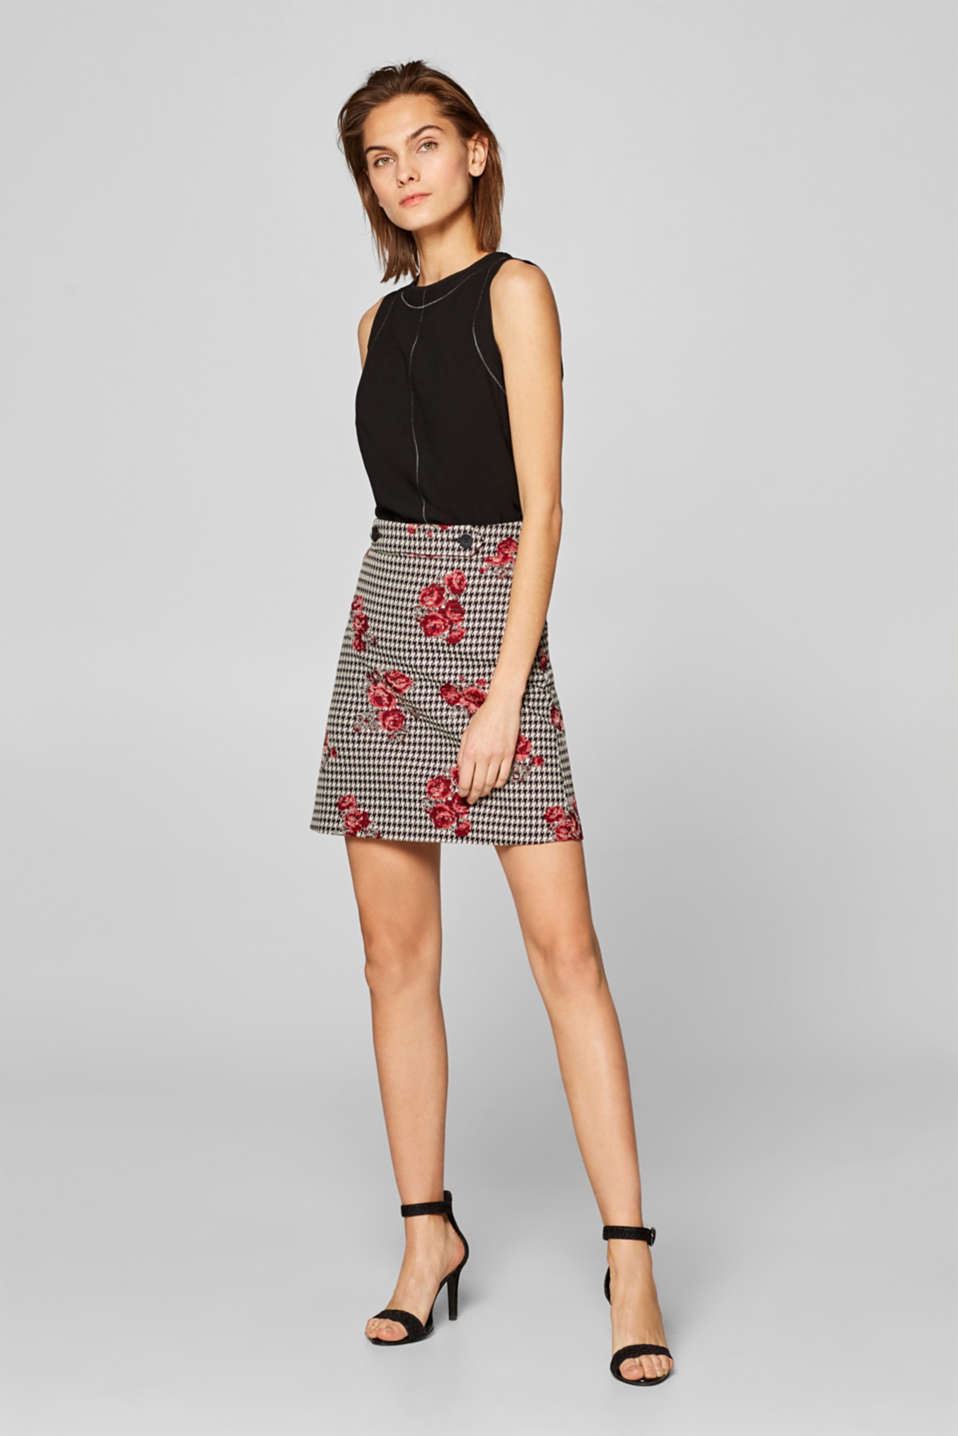 edc - Jacquard skirt with a houndstooth/rose pattern